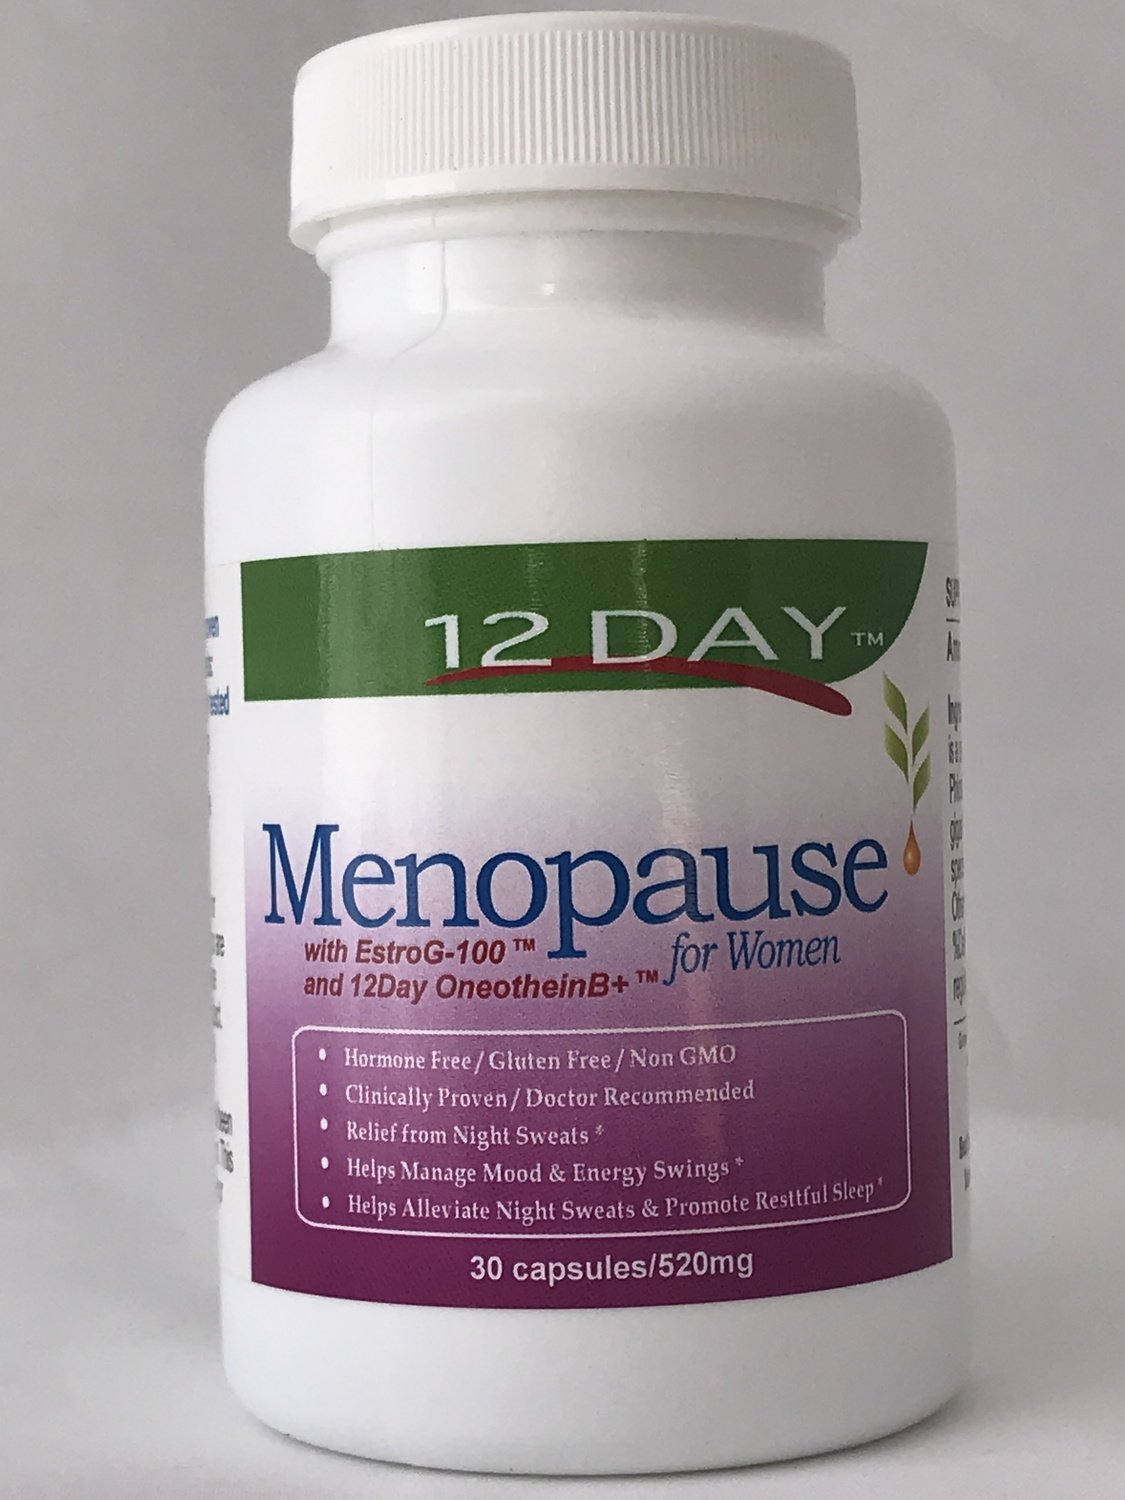 12Day Menopause Capsules (30-Day Supply)